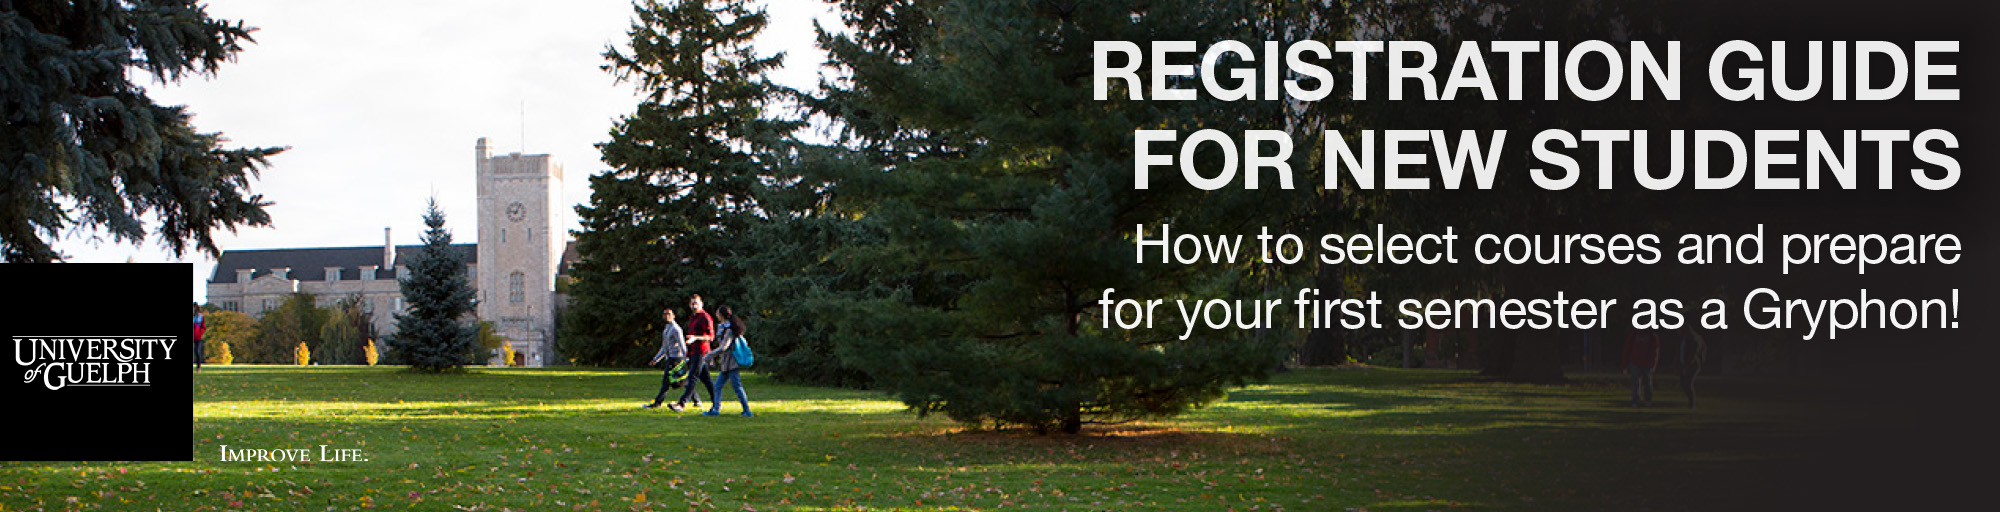 The Registration Guide for New Students contains information about how to select courses and prepare for your first semester as a Gryphon